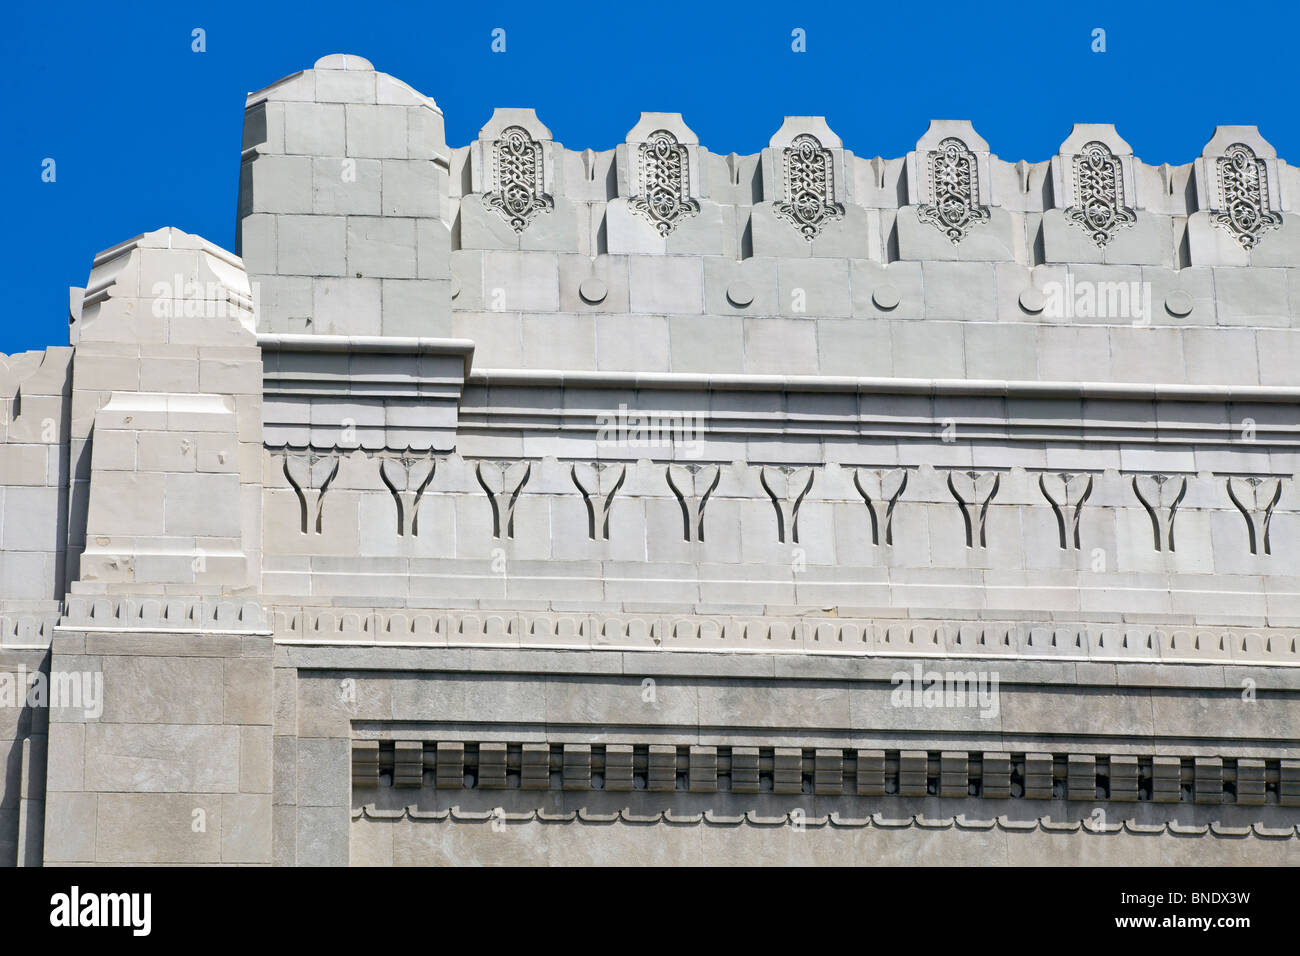 detail of side facade of Rodeph Shalom Synagogue, 607-615 N. Broad St., Philadelphia, Pennsylvania, USA - Stock Image